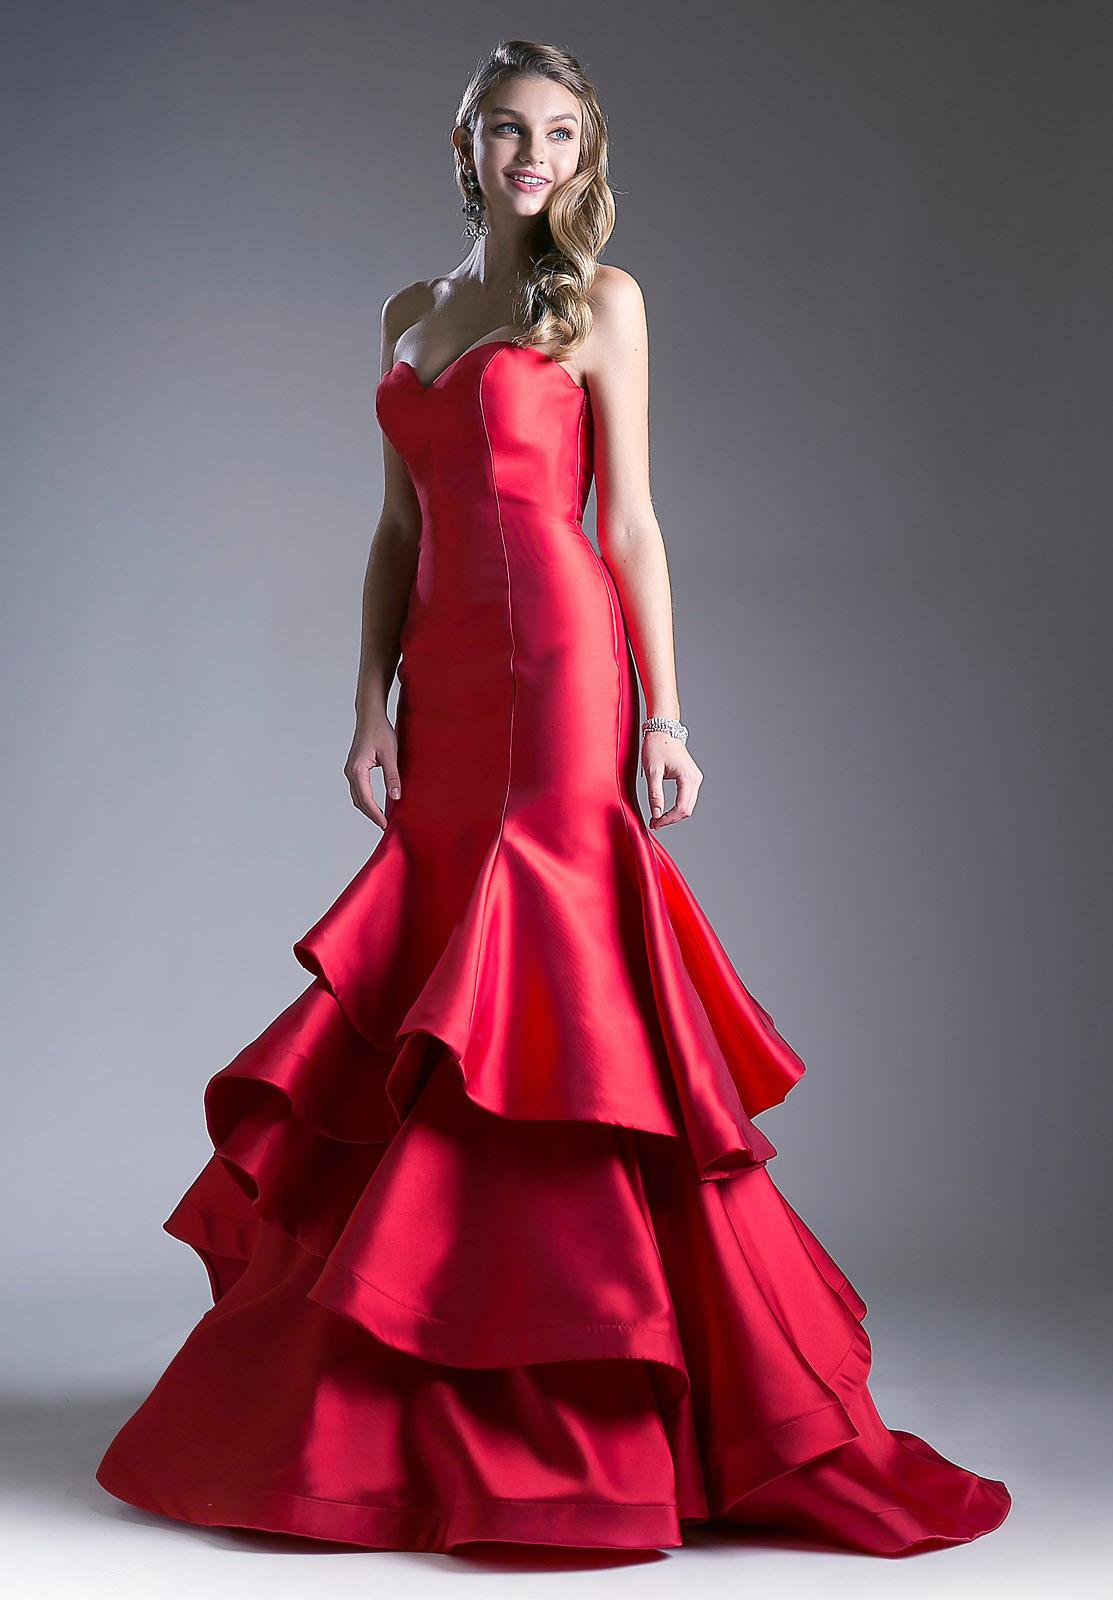 4a10af624c0 ... Red Strapless Layered Mermaid Long Prom Dress Corset Back ...